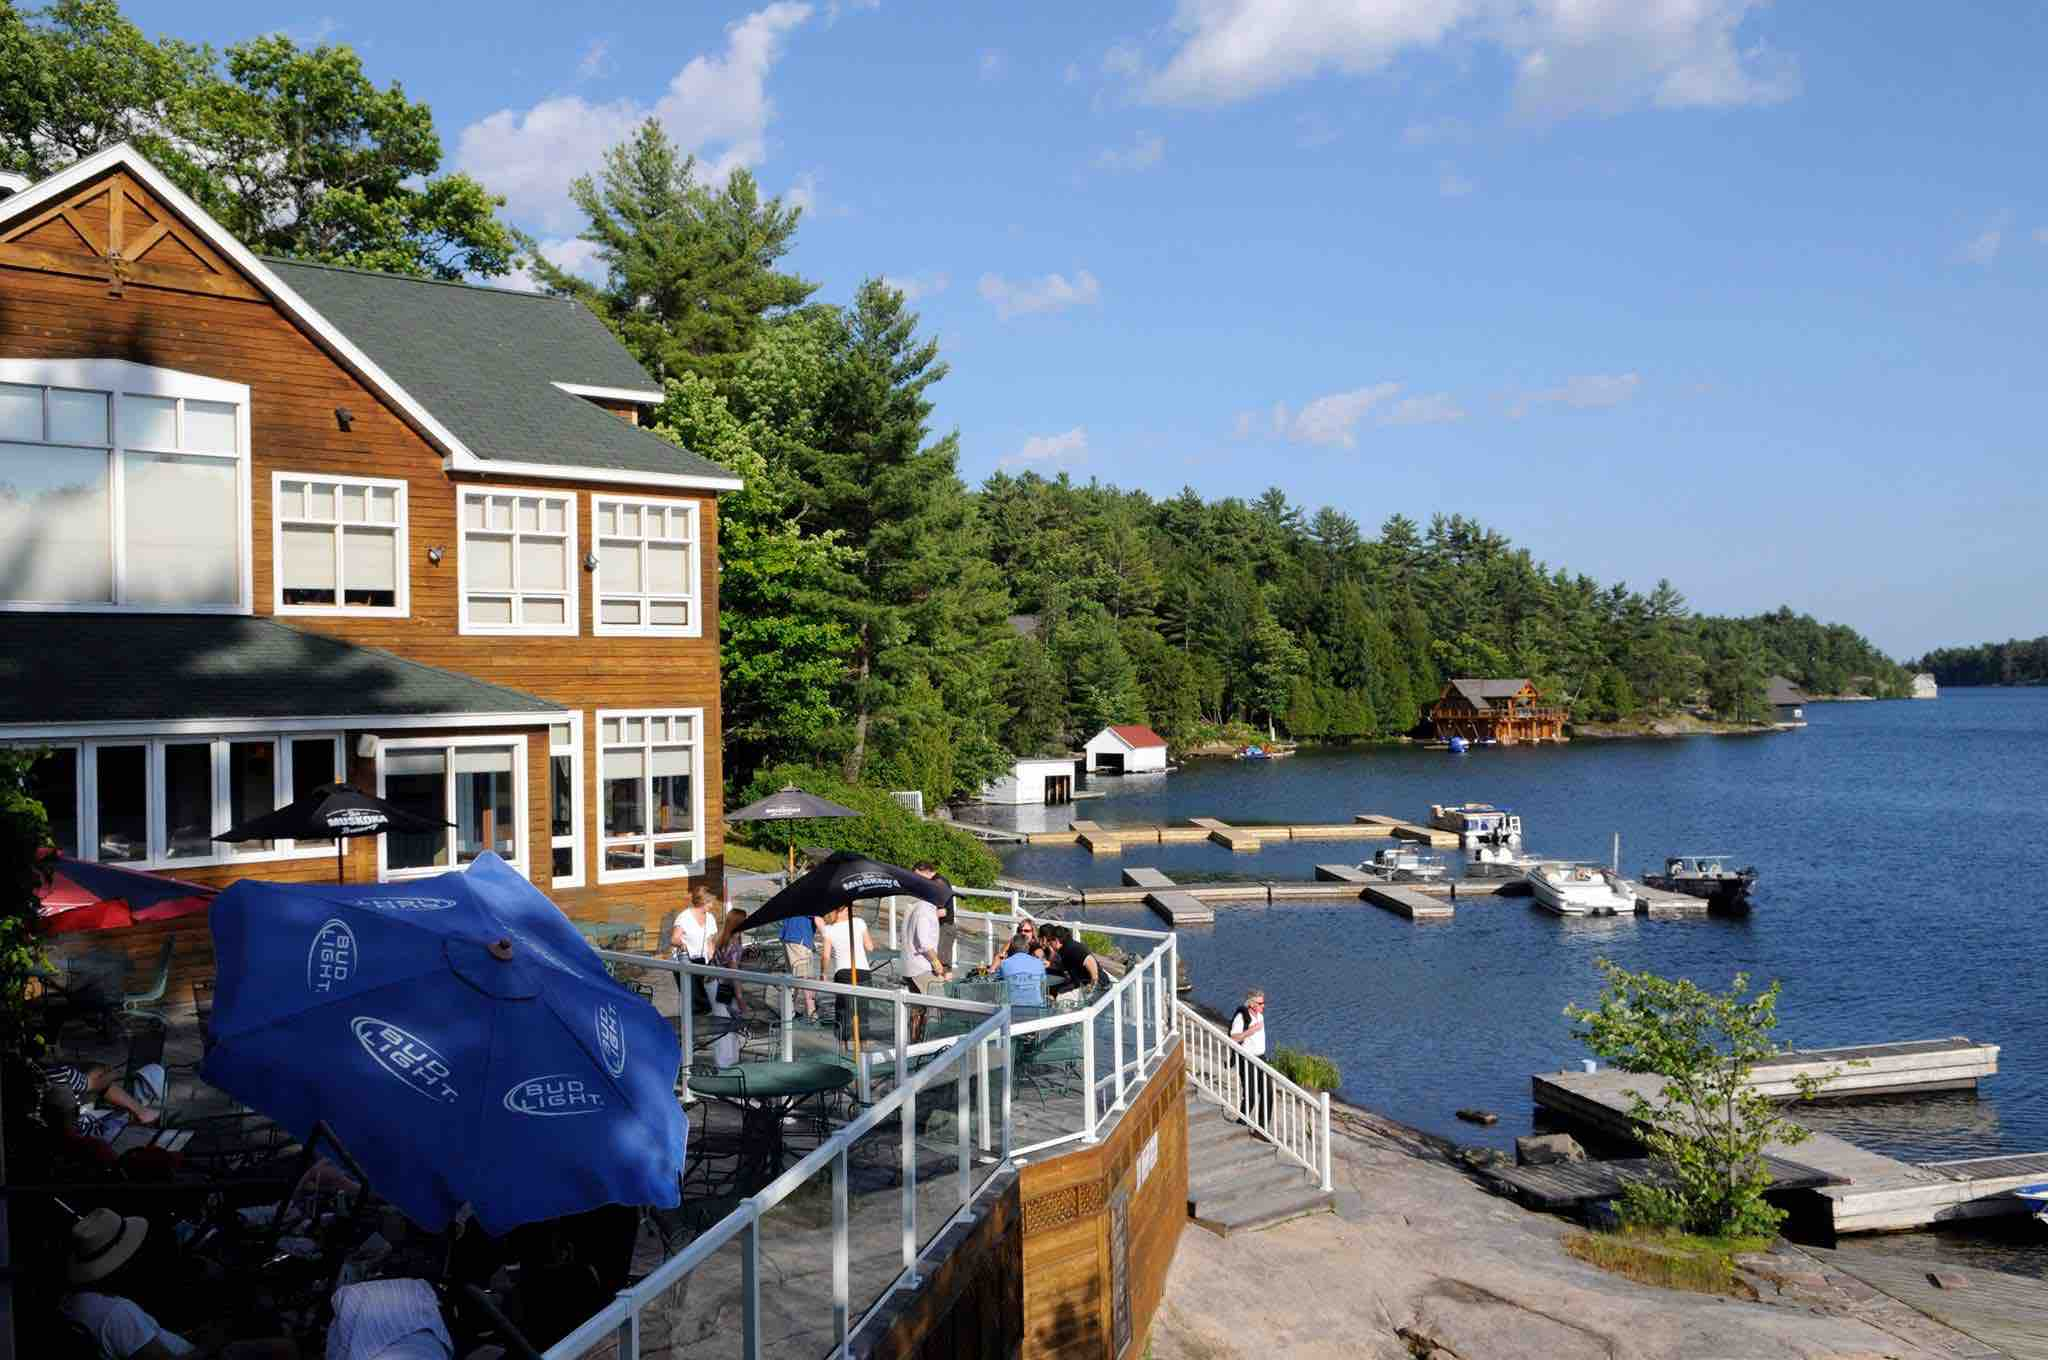 One of the best luxury Muskoka resorts is Rocky Crest shown here in summer overlooking the lake